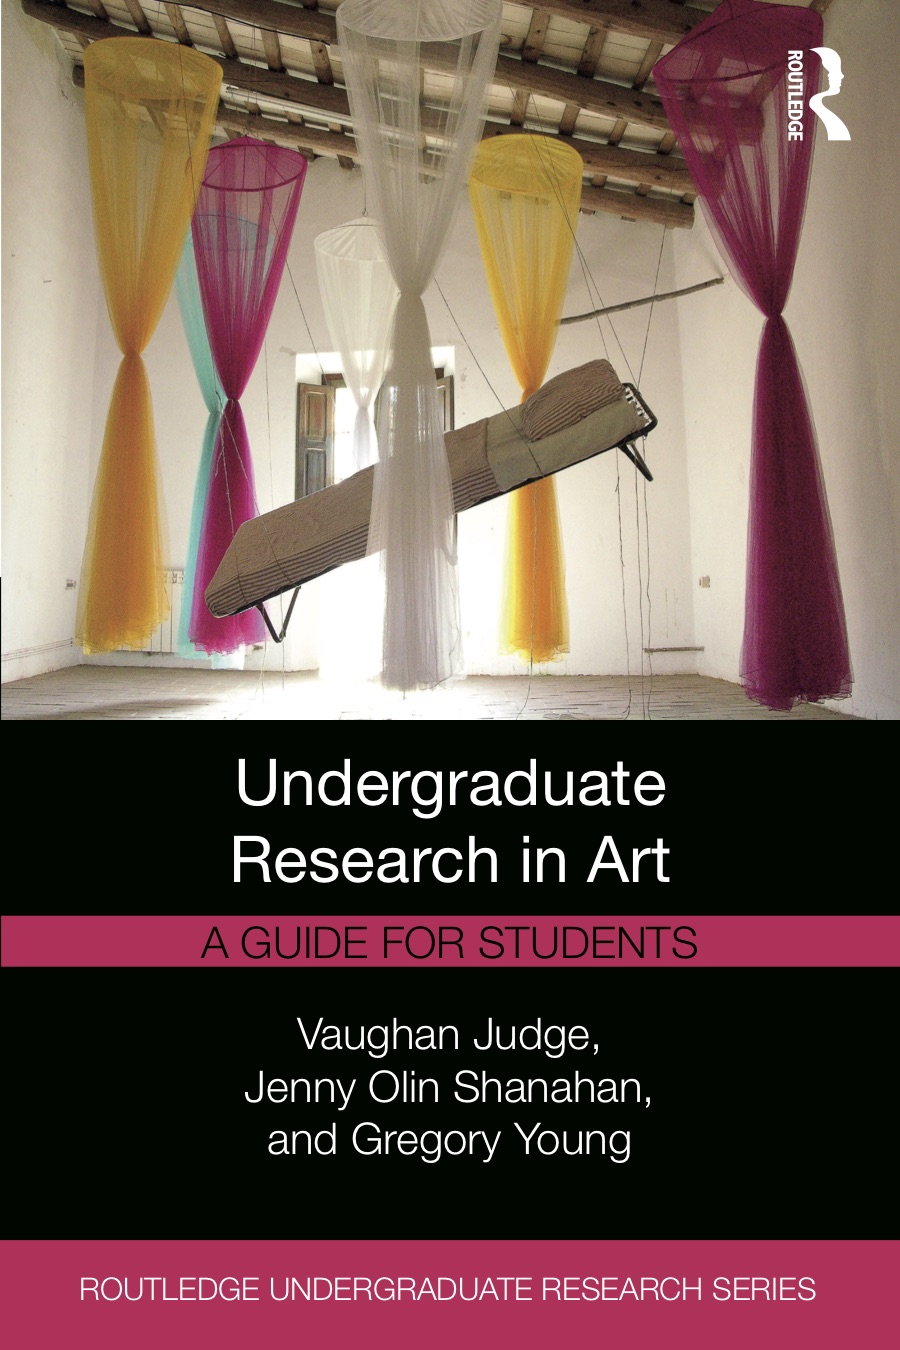 Undergraduate Research in Art_v01.jpg